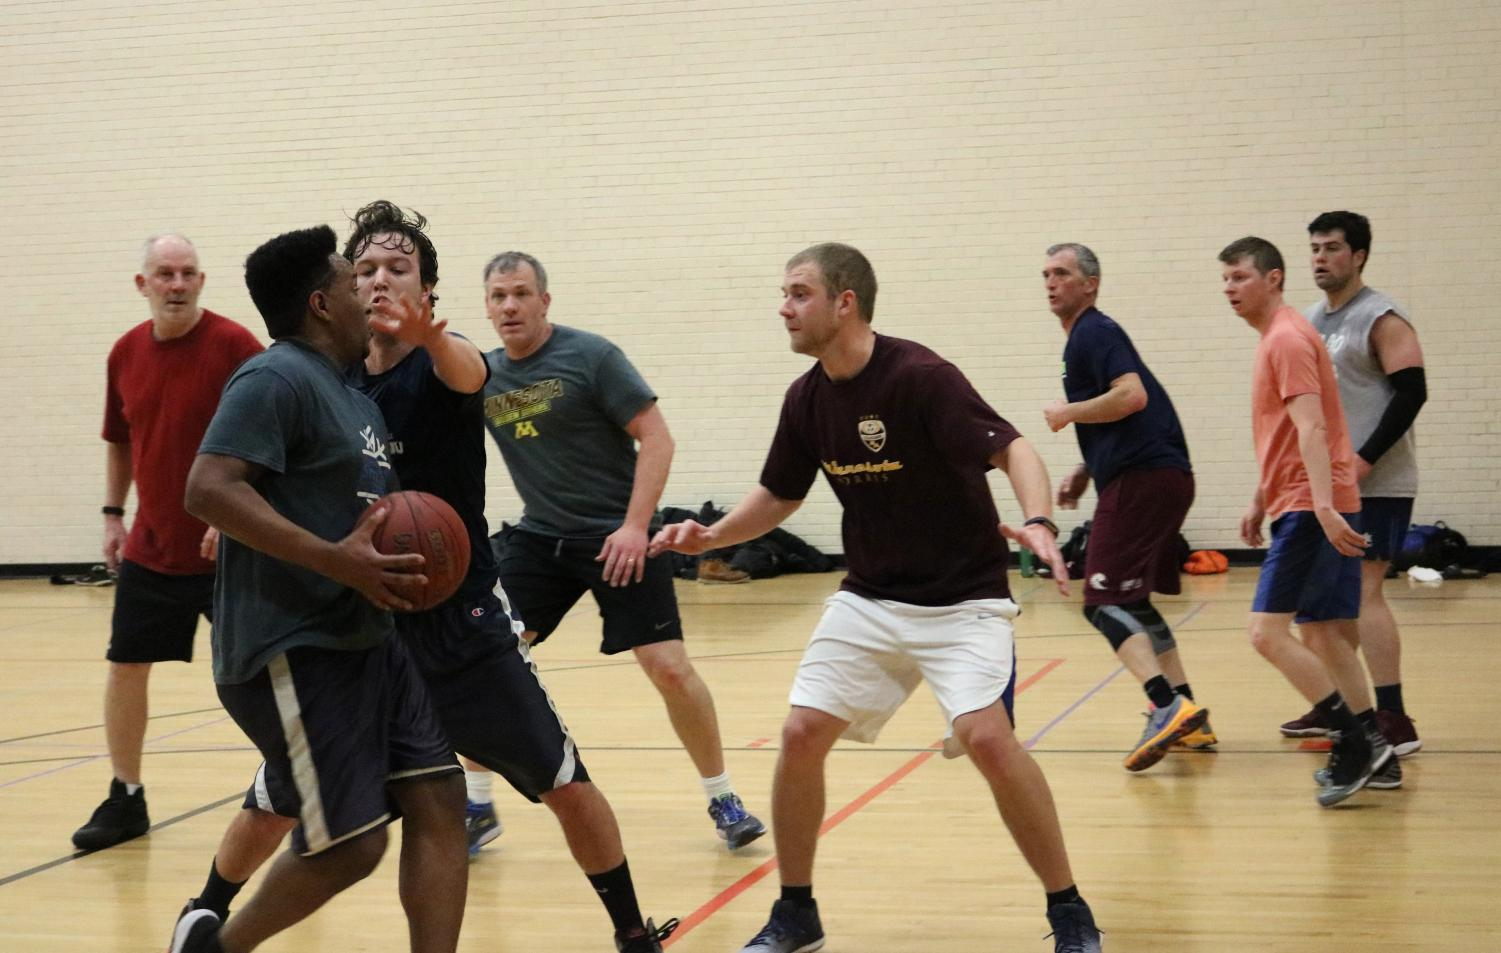 St. Louis Park school district teachers playing a full game of basketball April 11. The teachers get together every week at 6 a.m. on Wednesdays to play at the middle school.